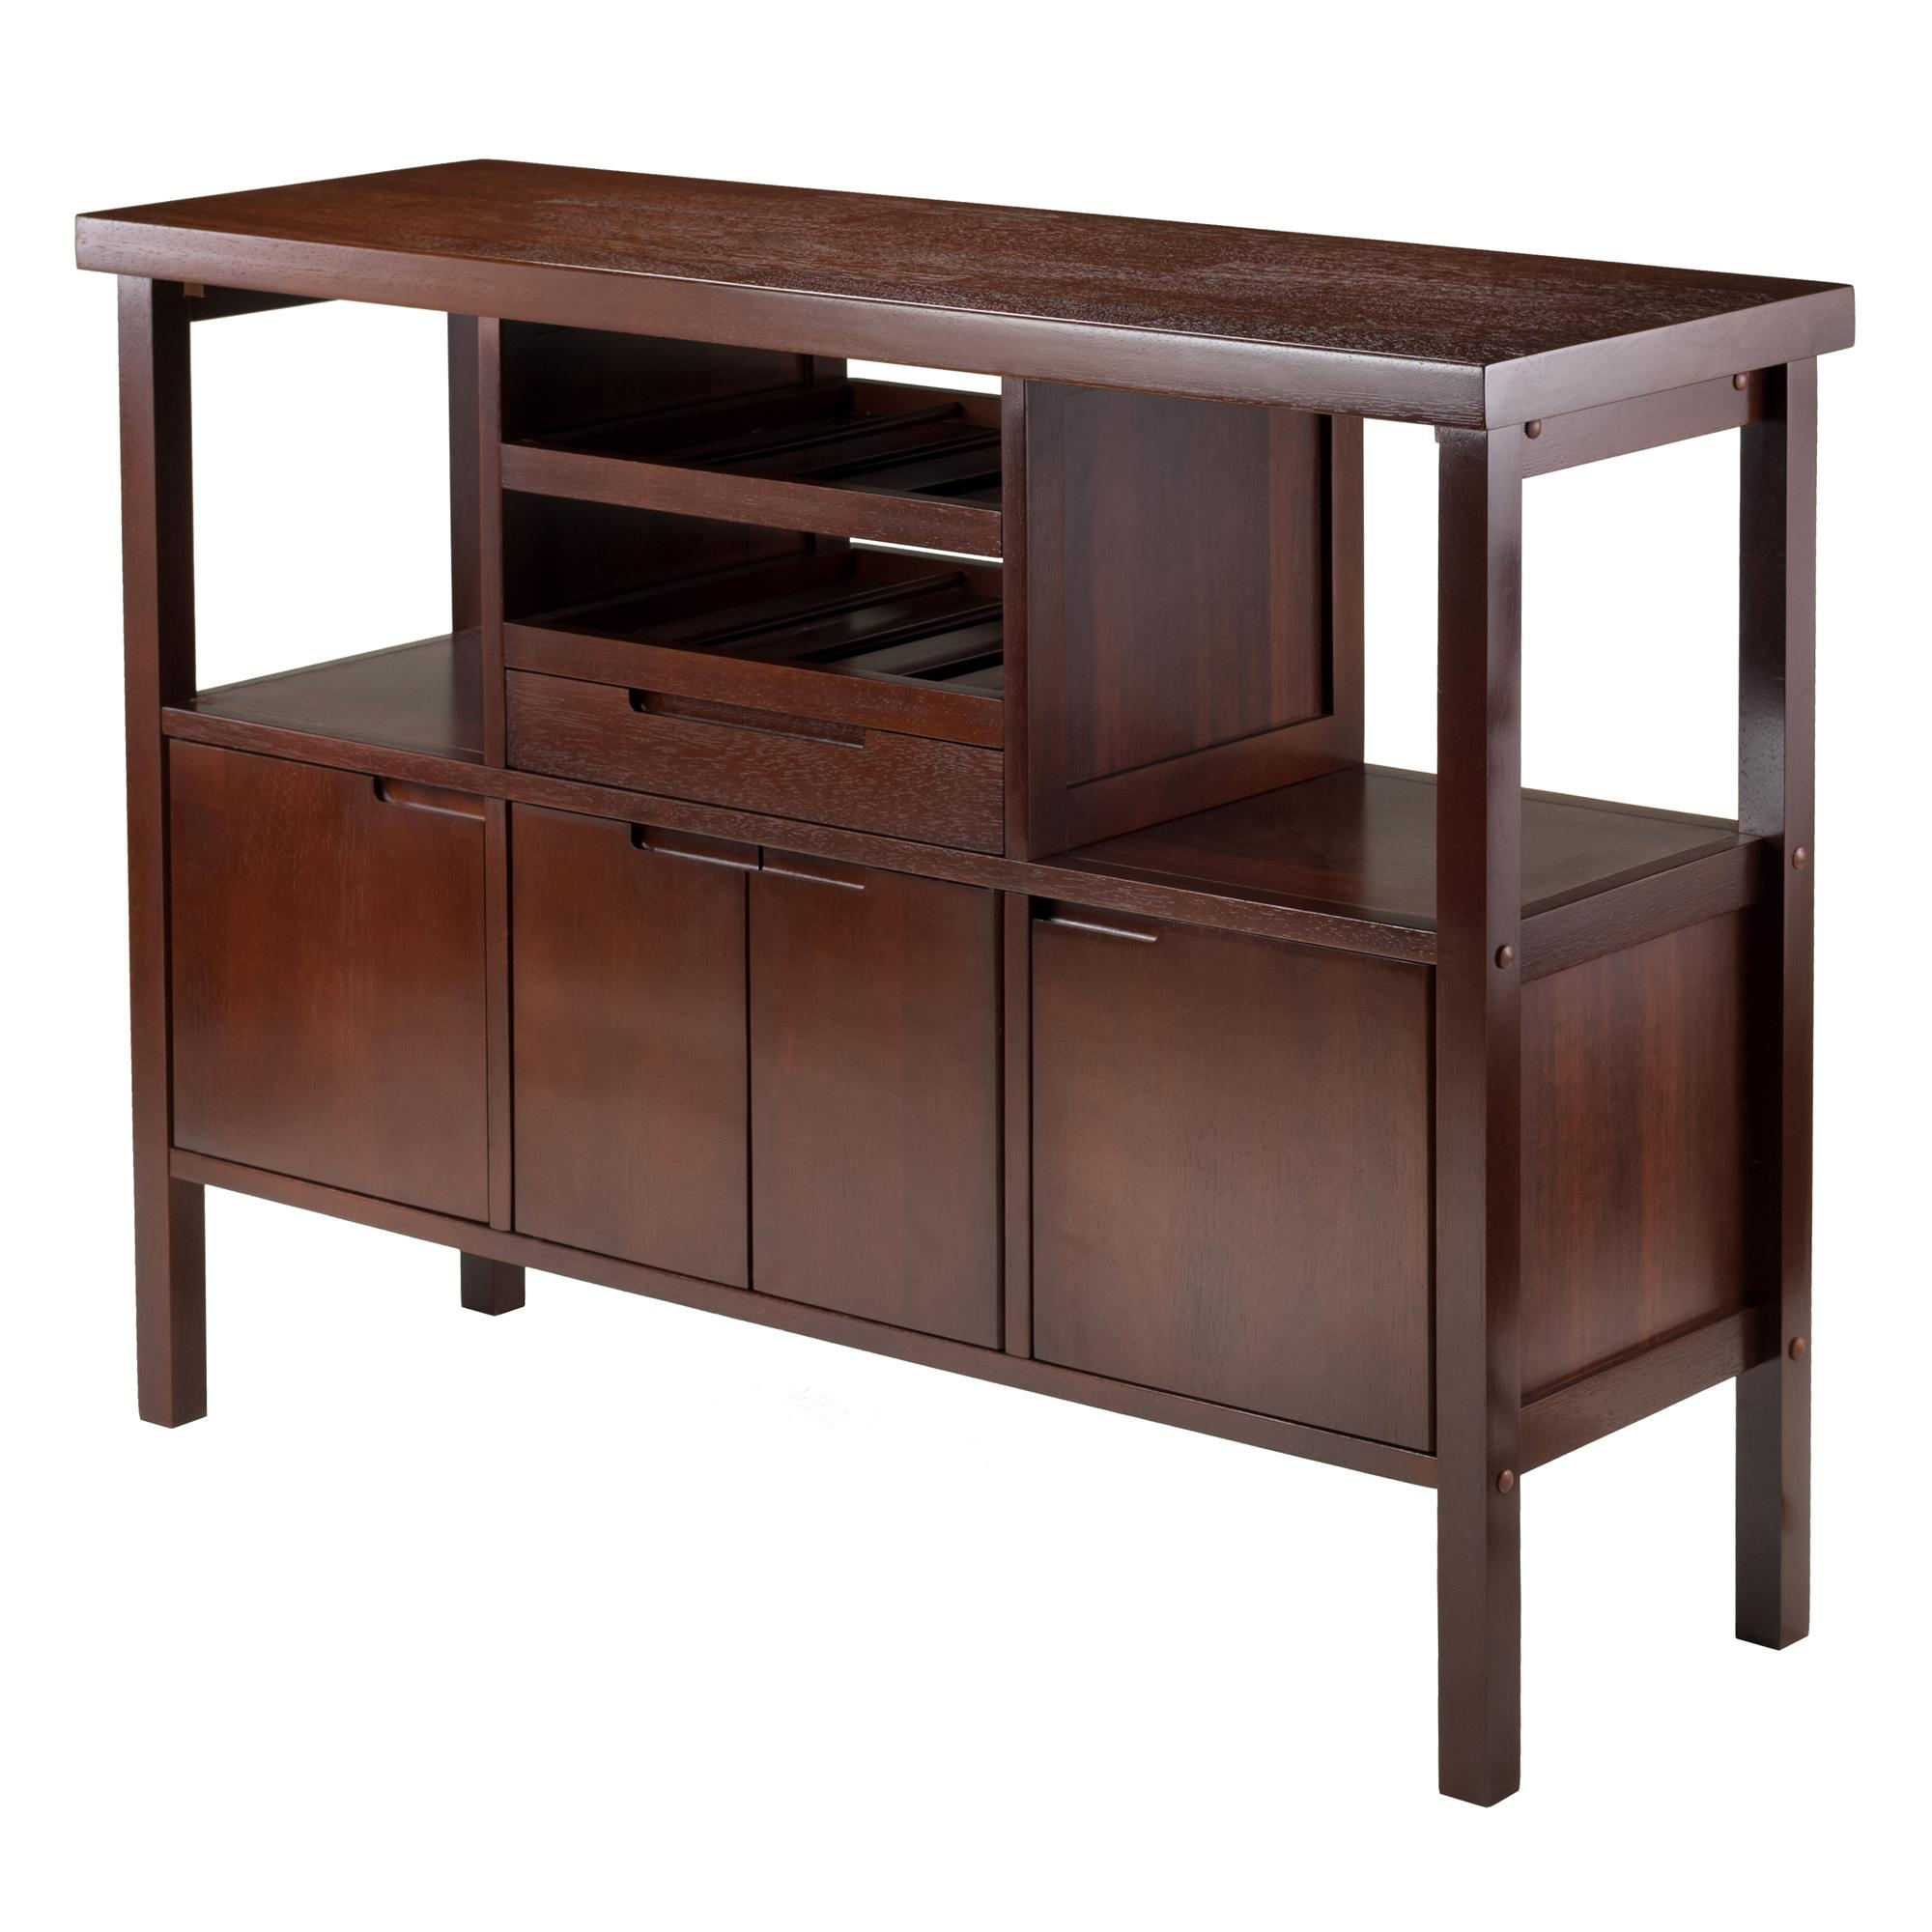 Winsome diego buffet sideboard table brown buffets sideboards - Buffet table images ...